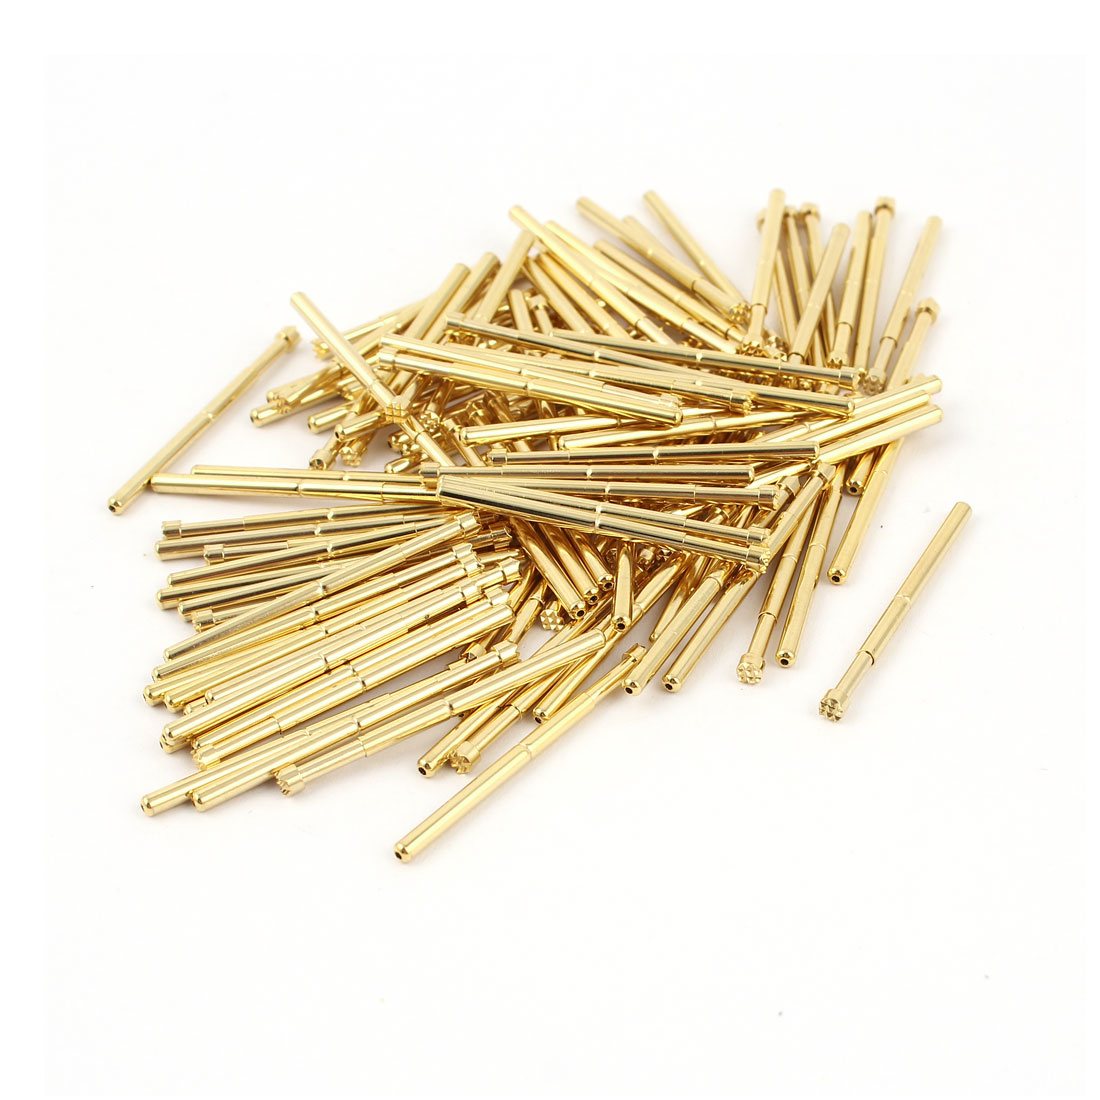 100 Pcs 2.5mm Serrated Tip Spring Loaded Testing Probes Pins